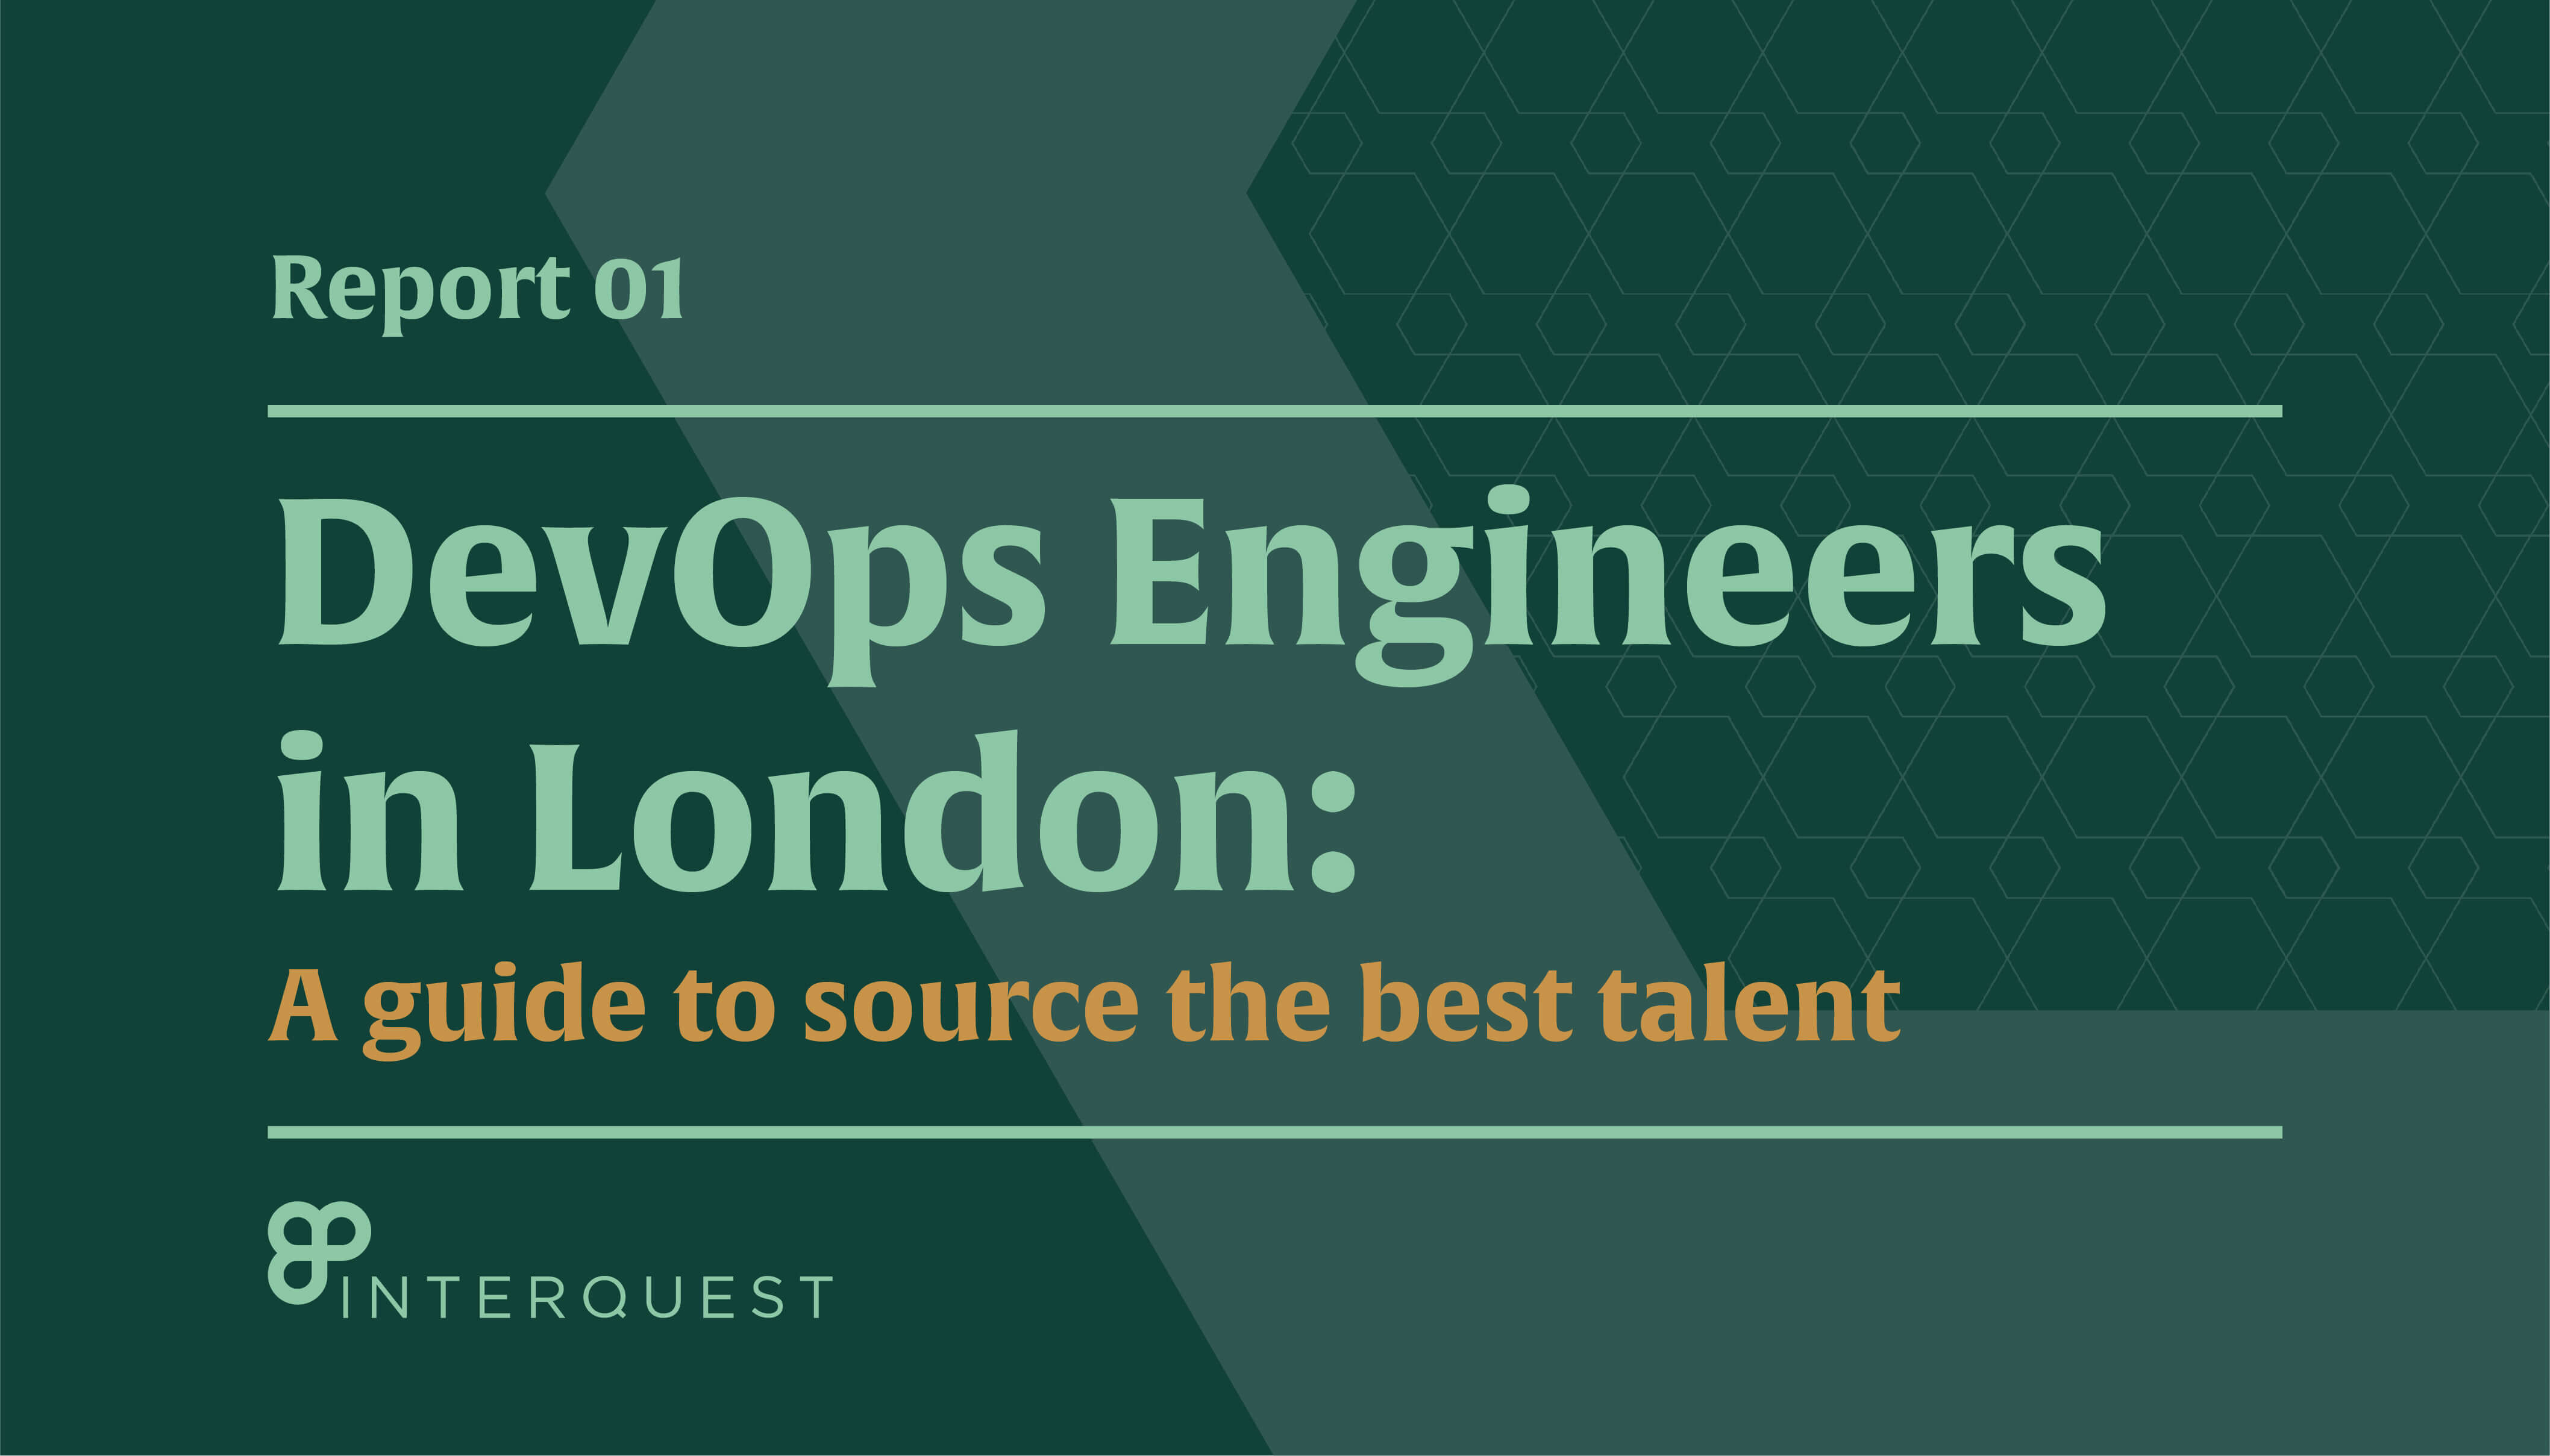 DevOps Engineers in London: A guide to source the best talent report banner